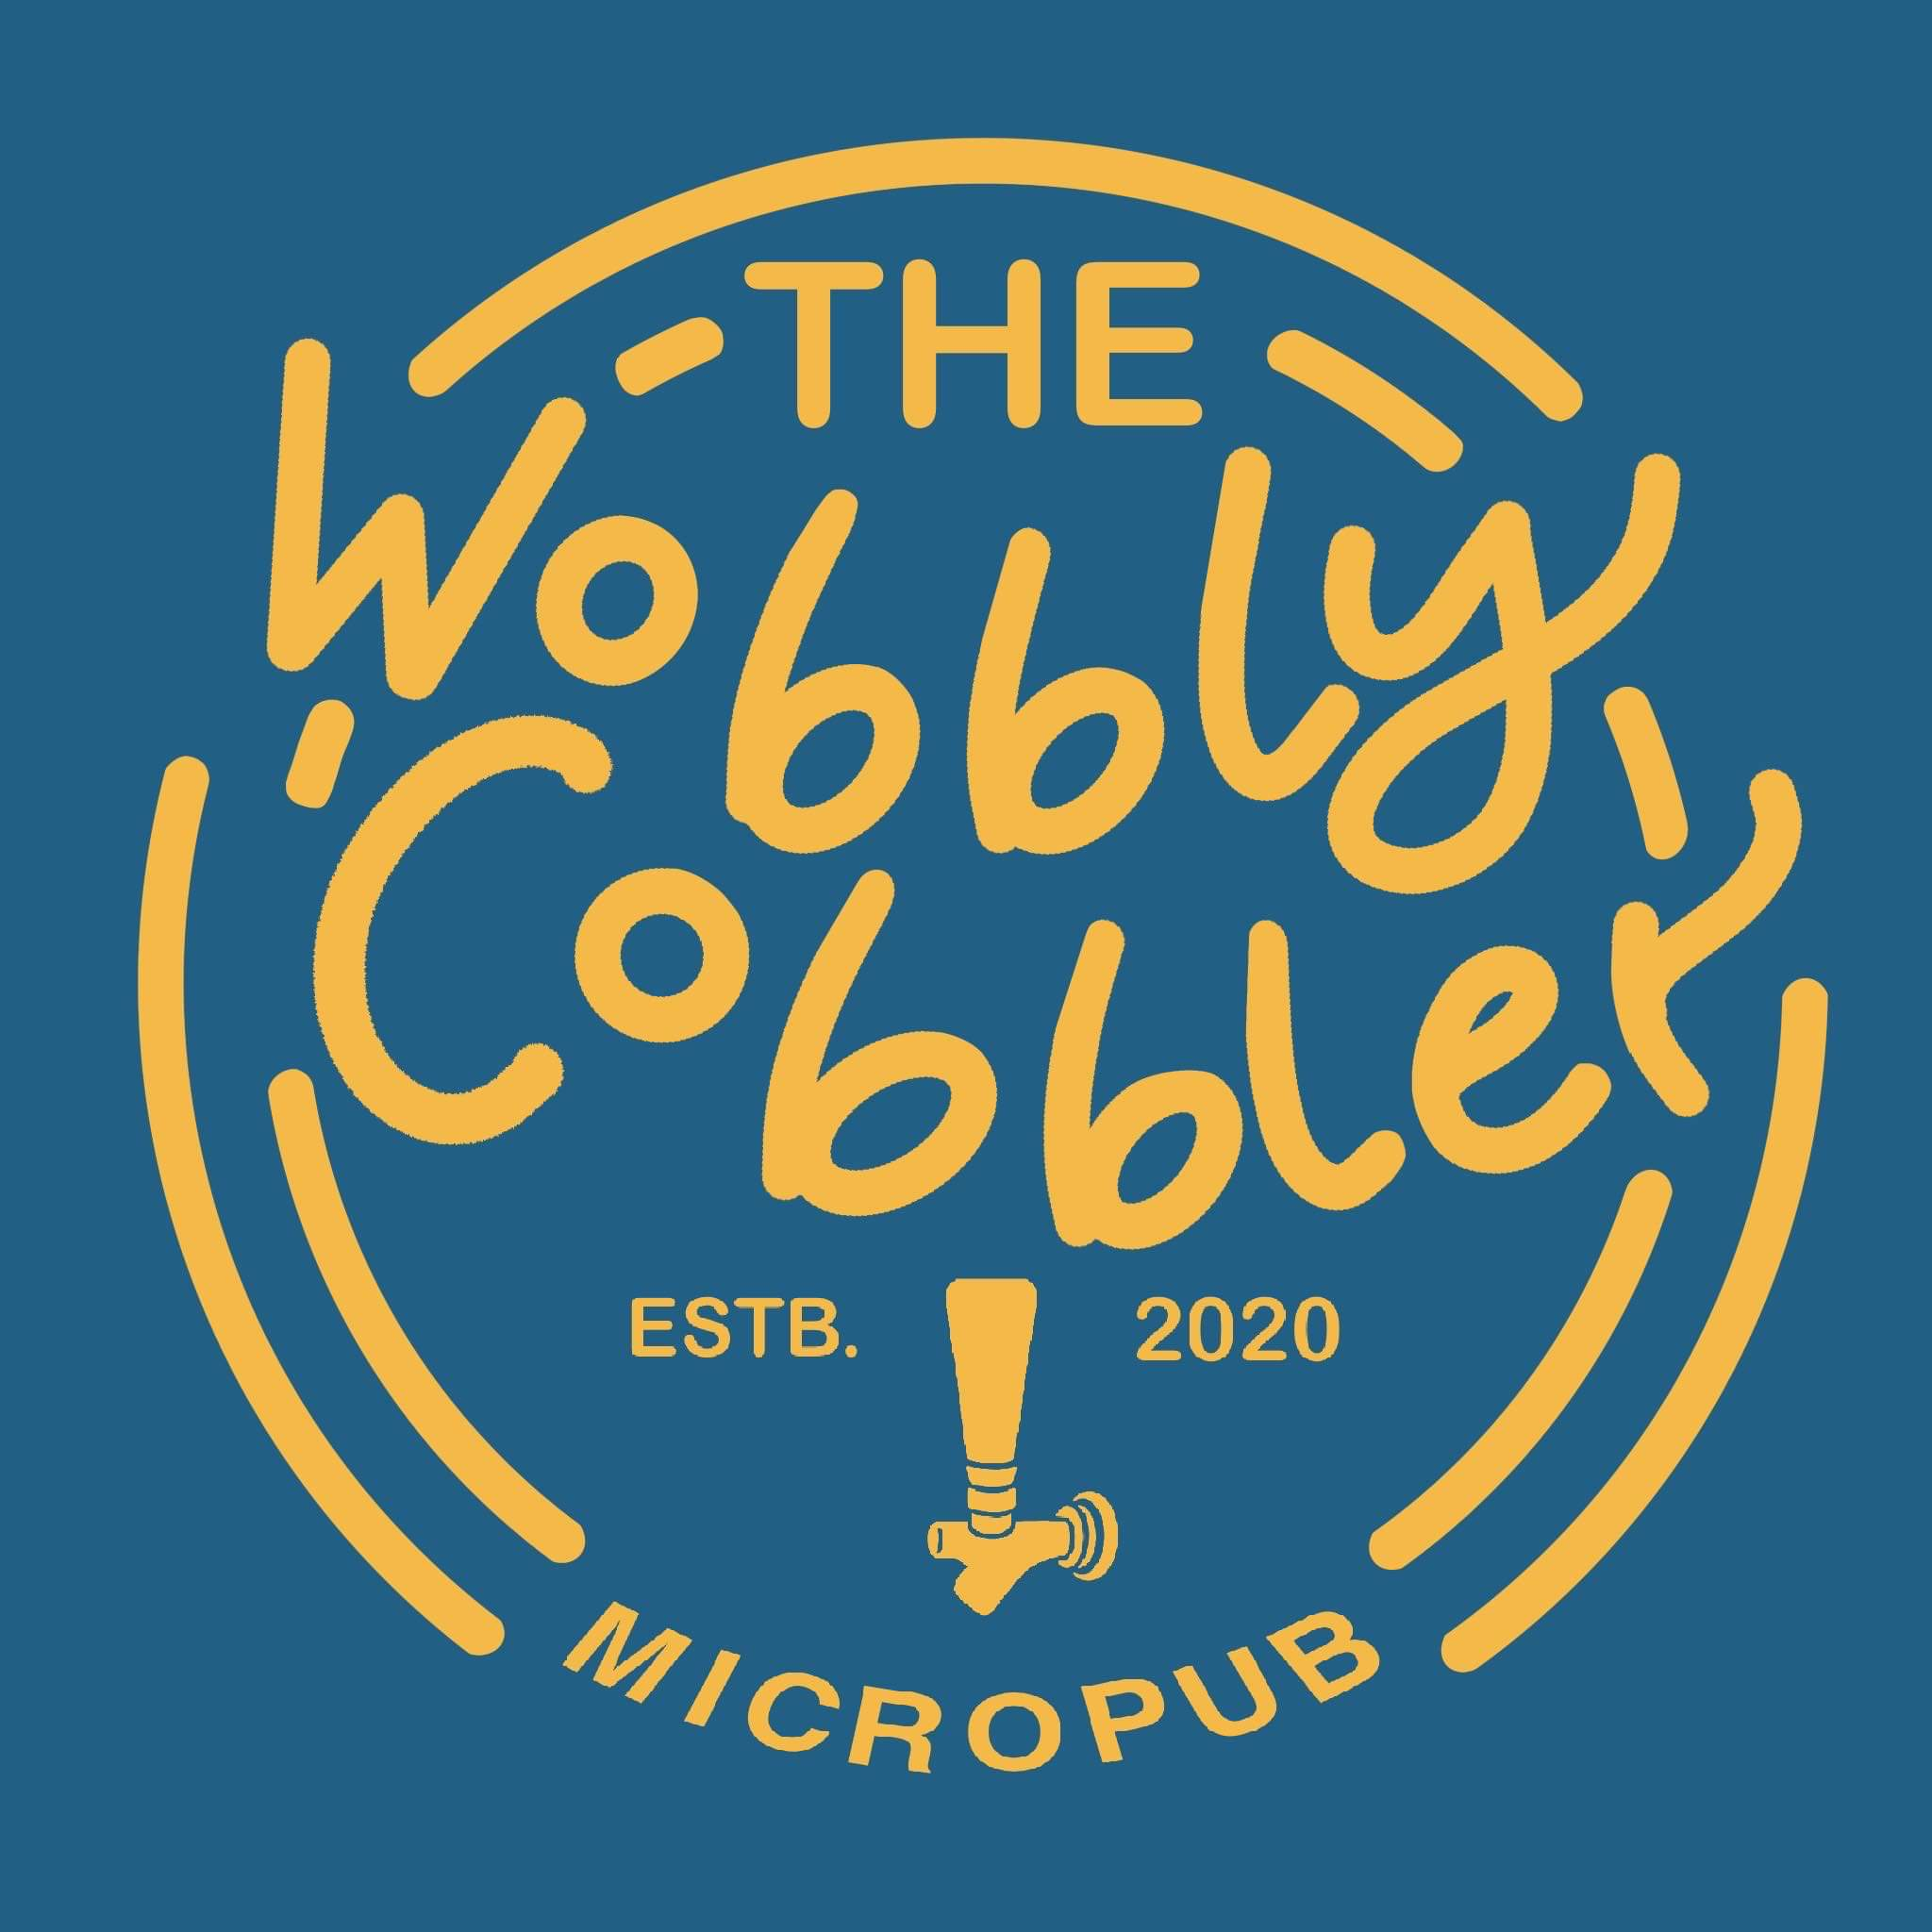 The Wobbly Cobbler